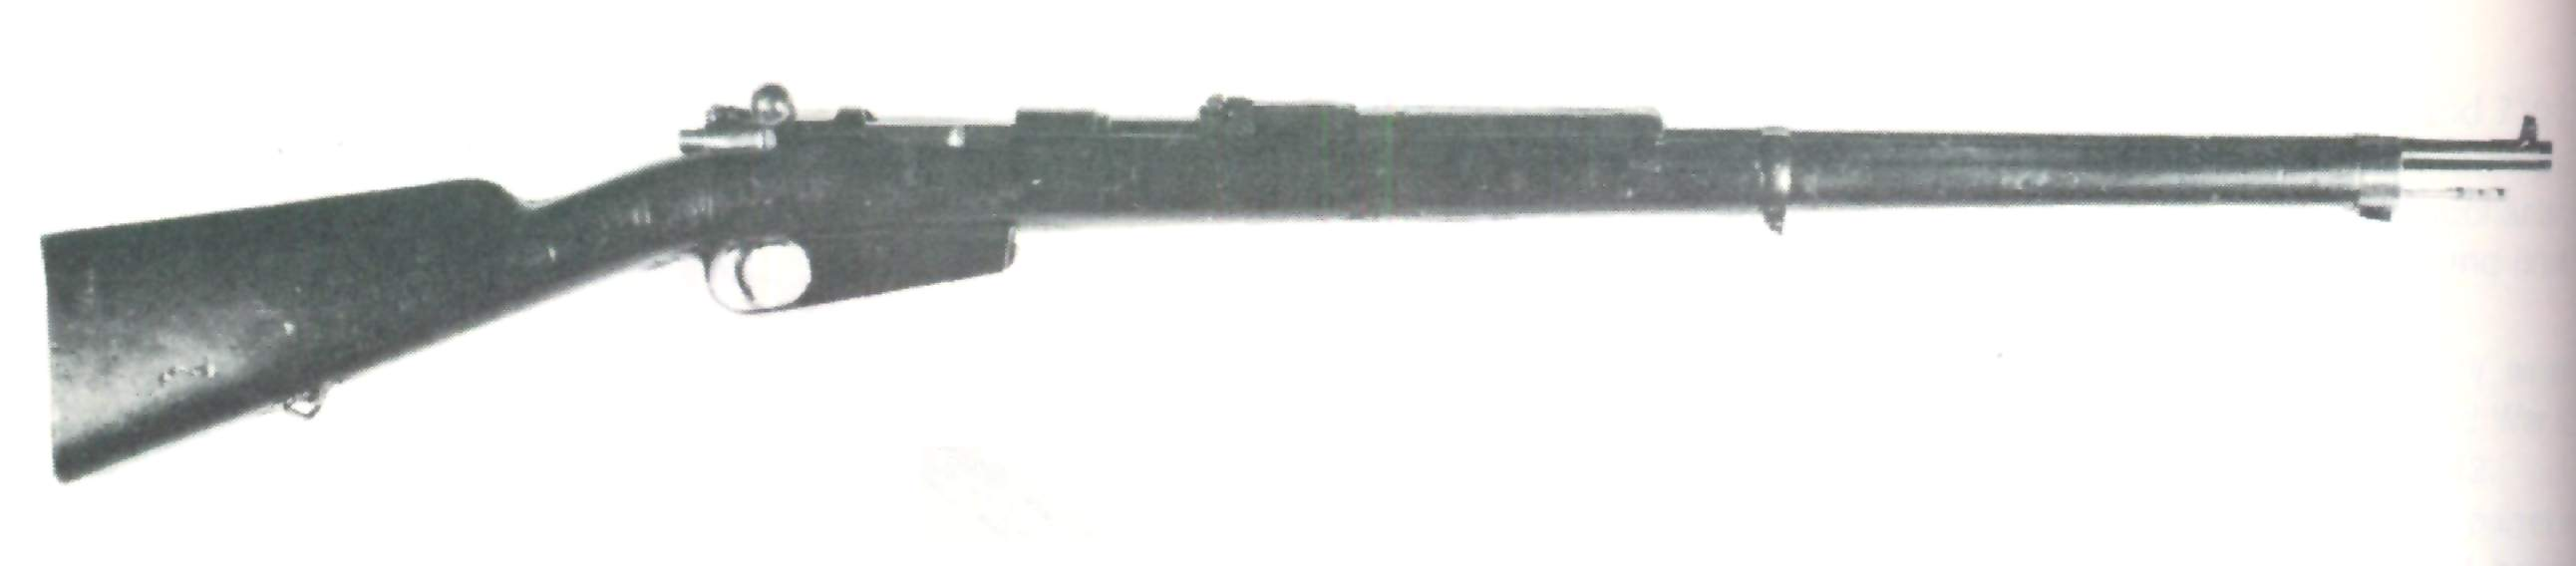 Mauser Turque Mle 1890